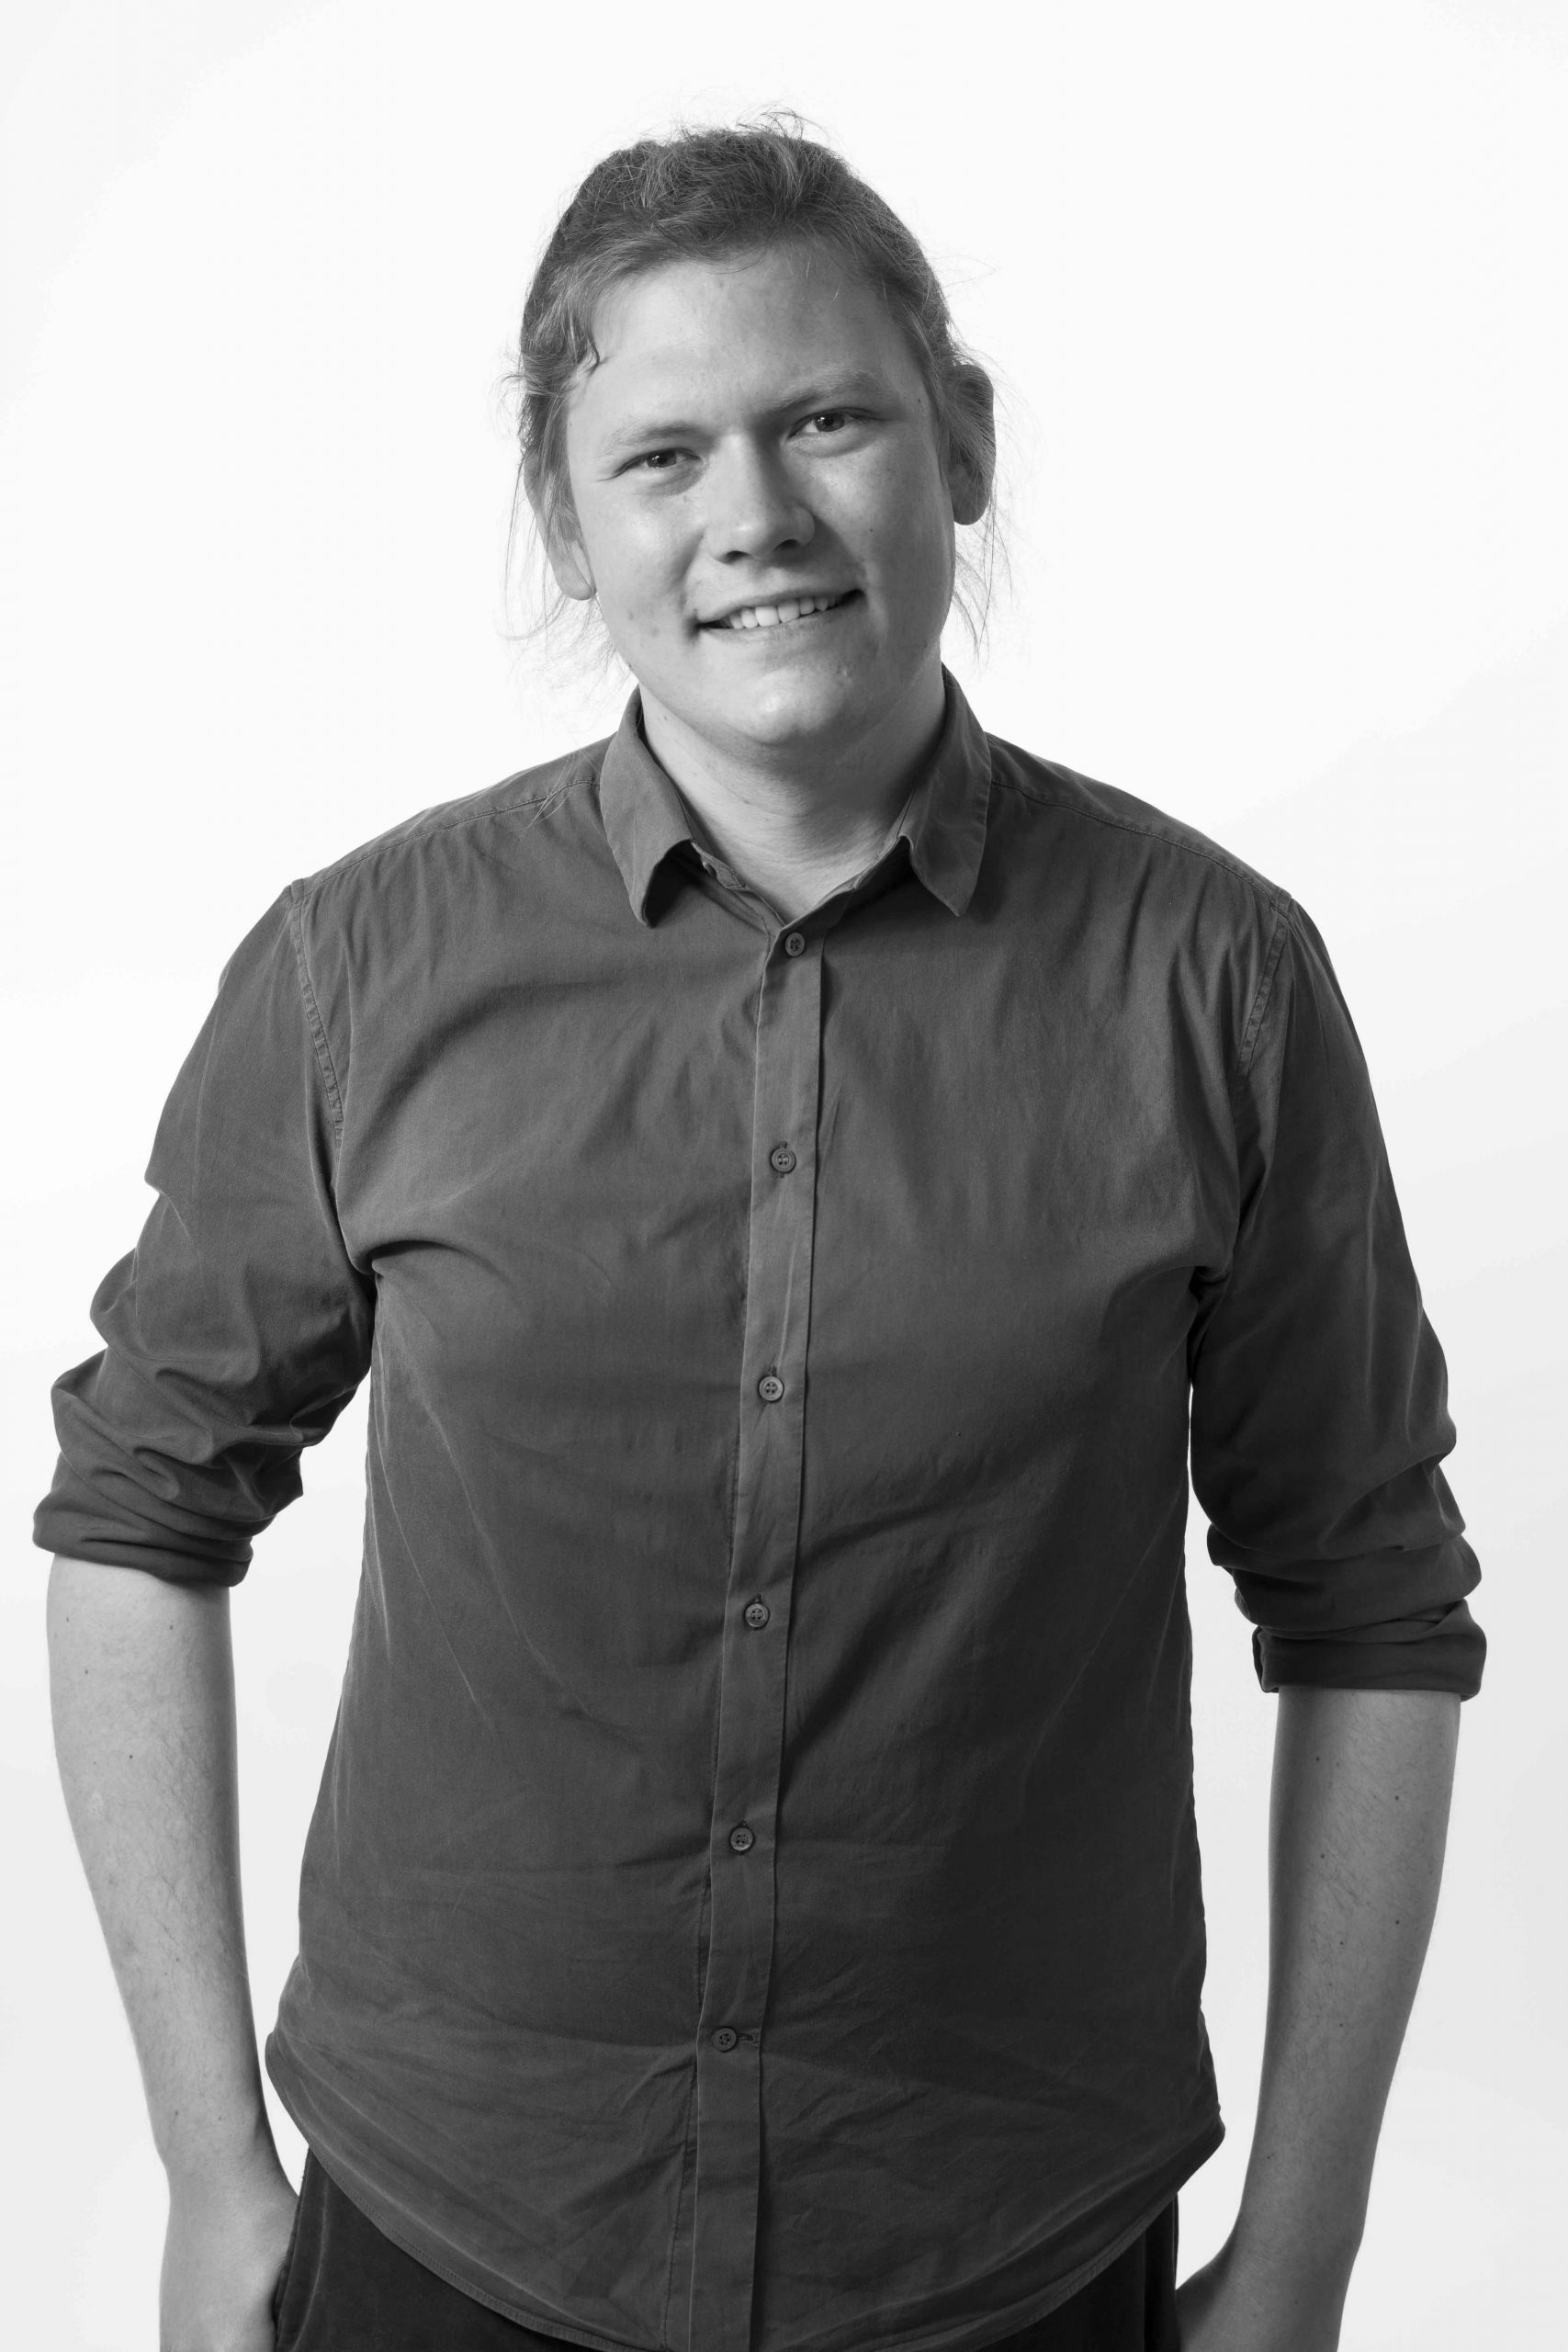 Emil Christiansen – Head of communication in the acoustic company Intelligent Space